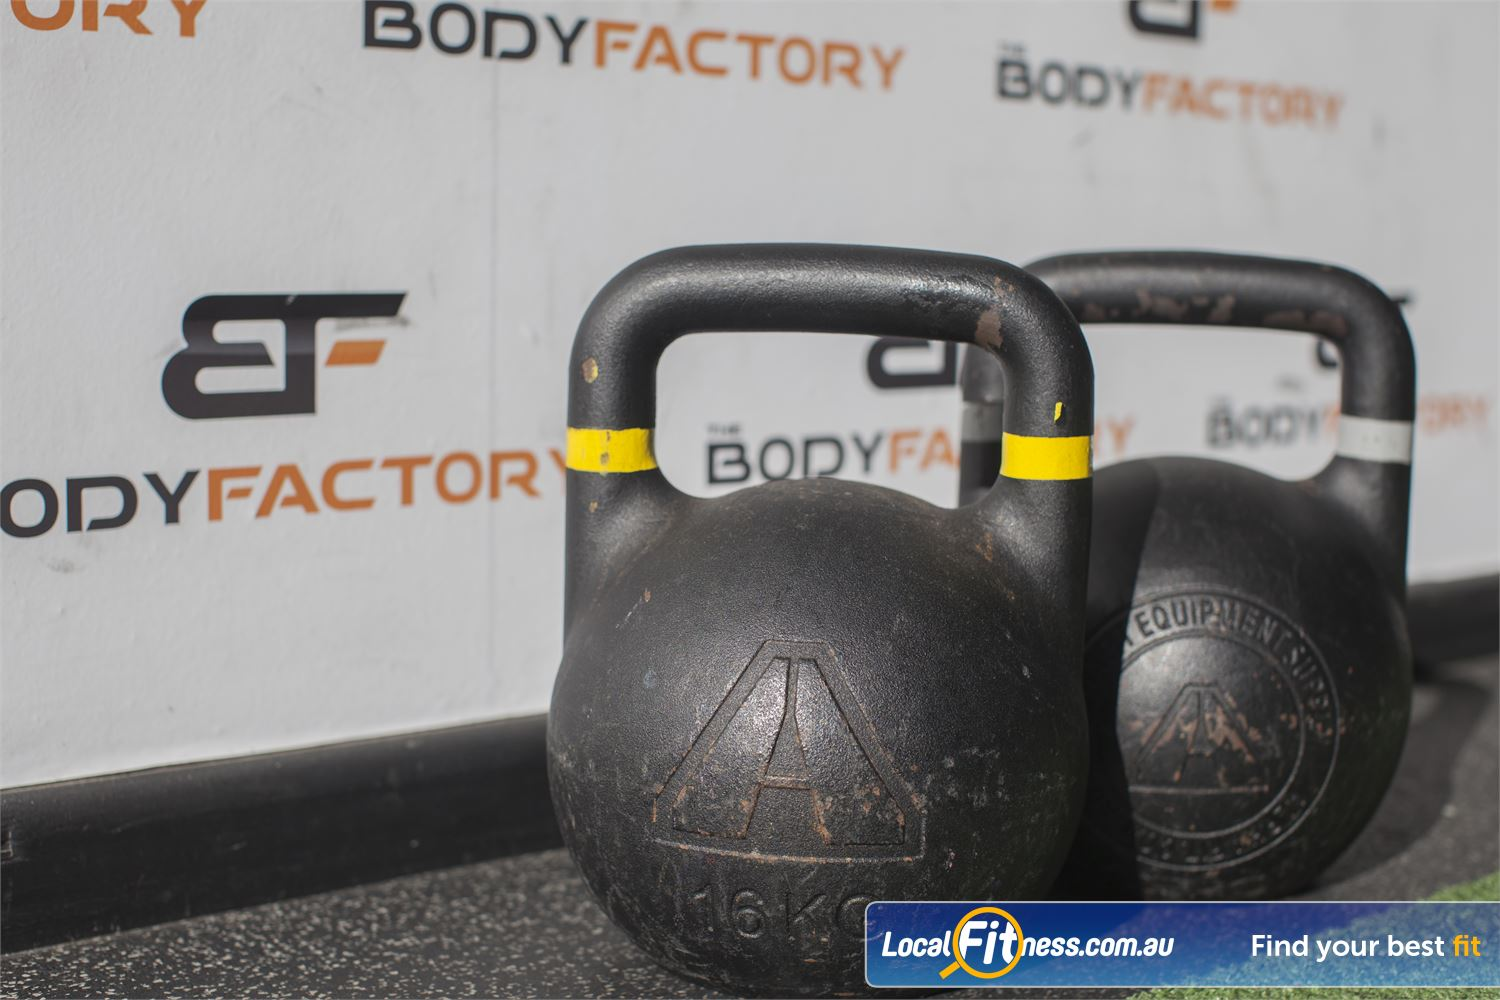 The Body Factory Near Warumbul State of the art functional training inc. kettlebells, battle ropes and more.